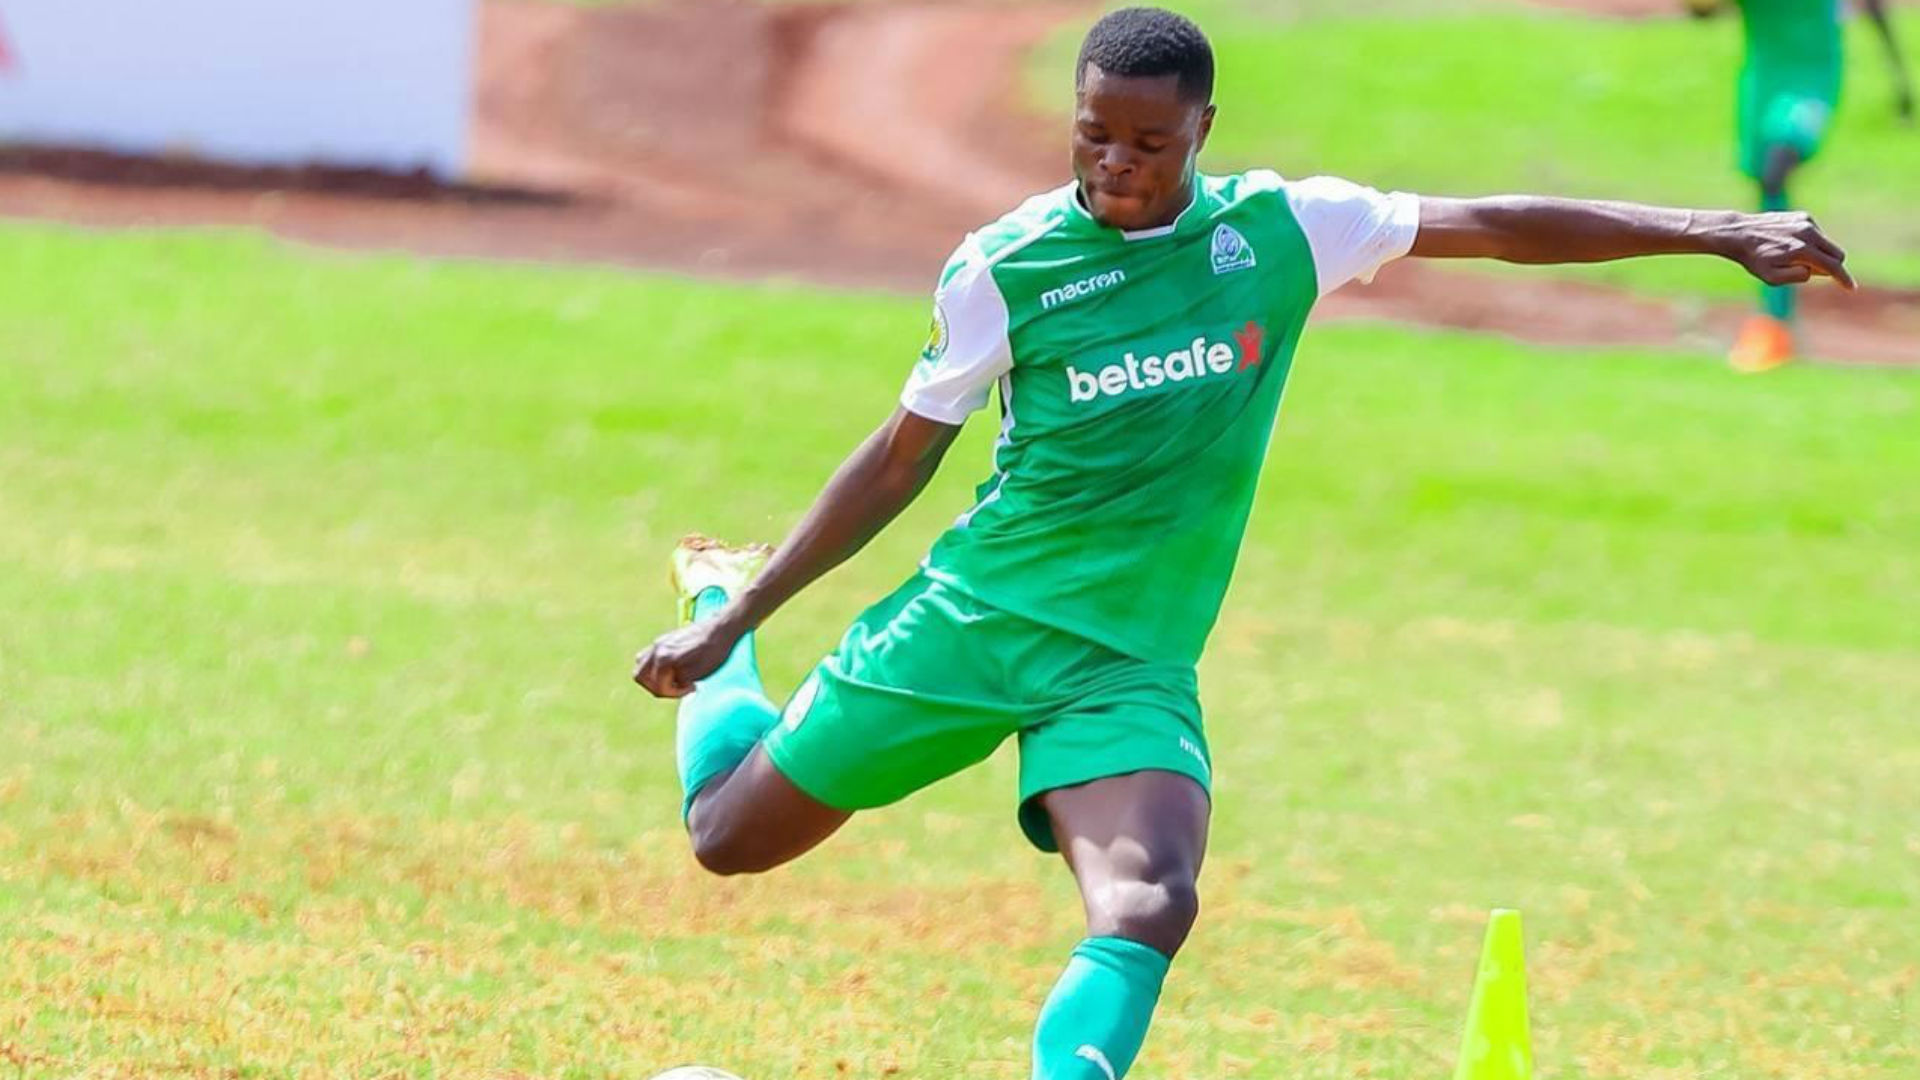 Caf Champions League: 'Gor Mahia will give it their all against CR Belouizdad' - Omalla